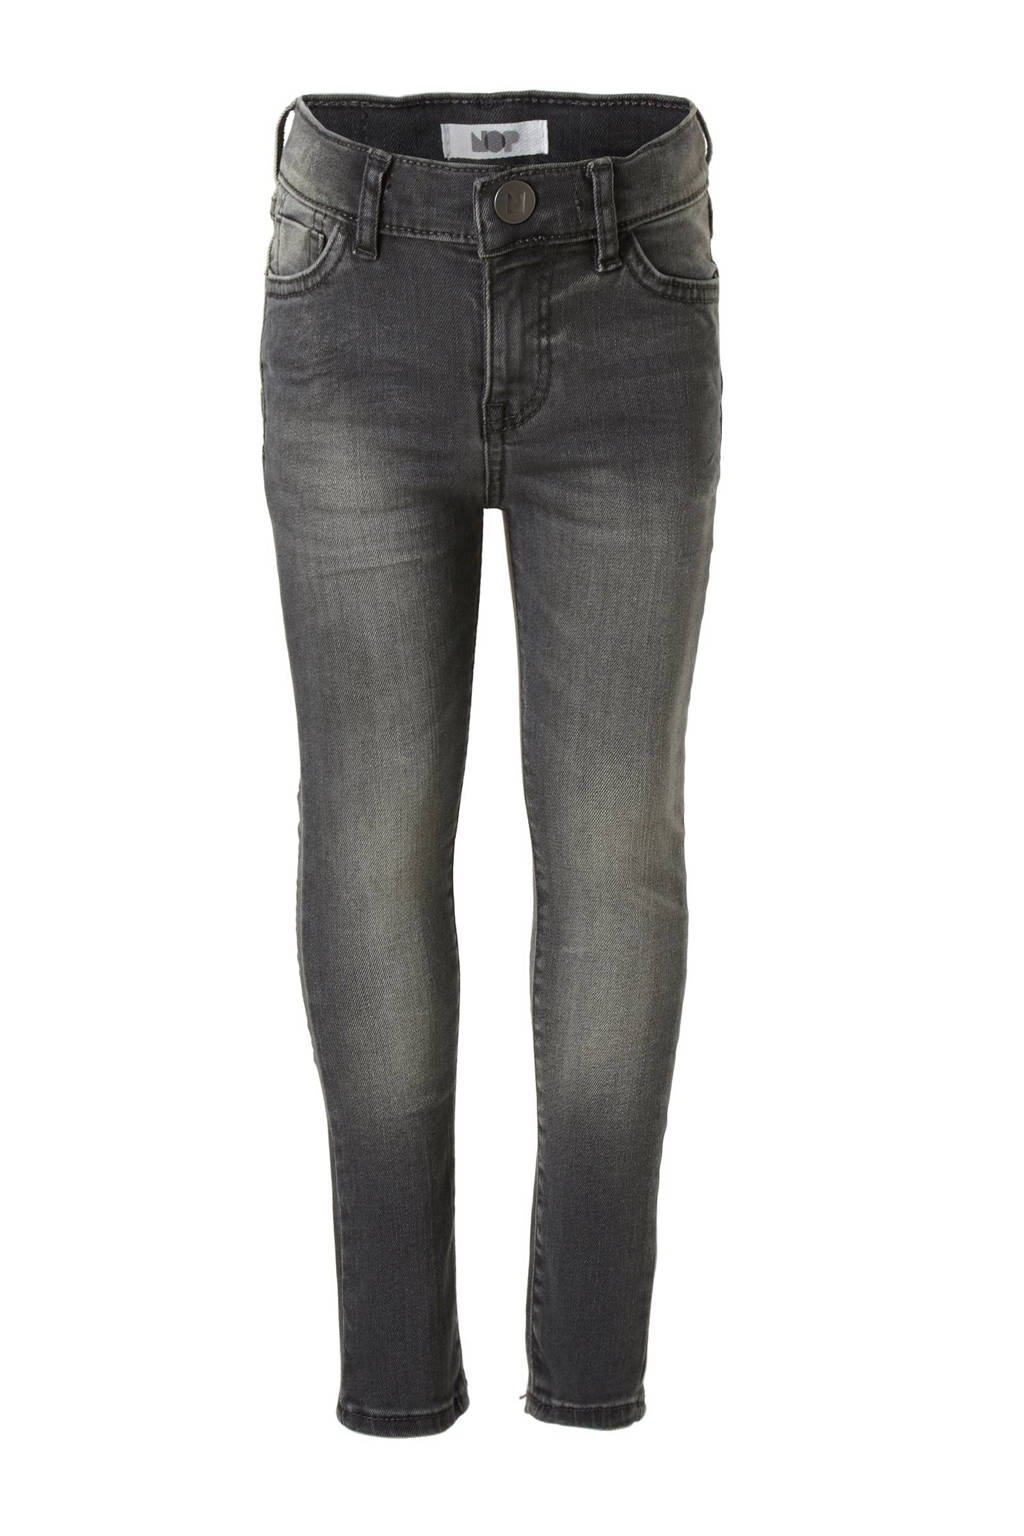 NOP Noah slim fit jeans, Grey denim